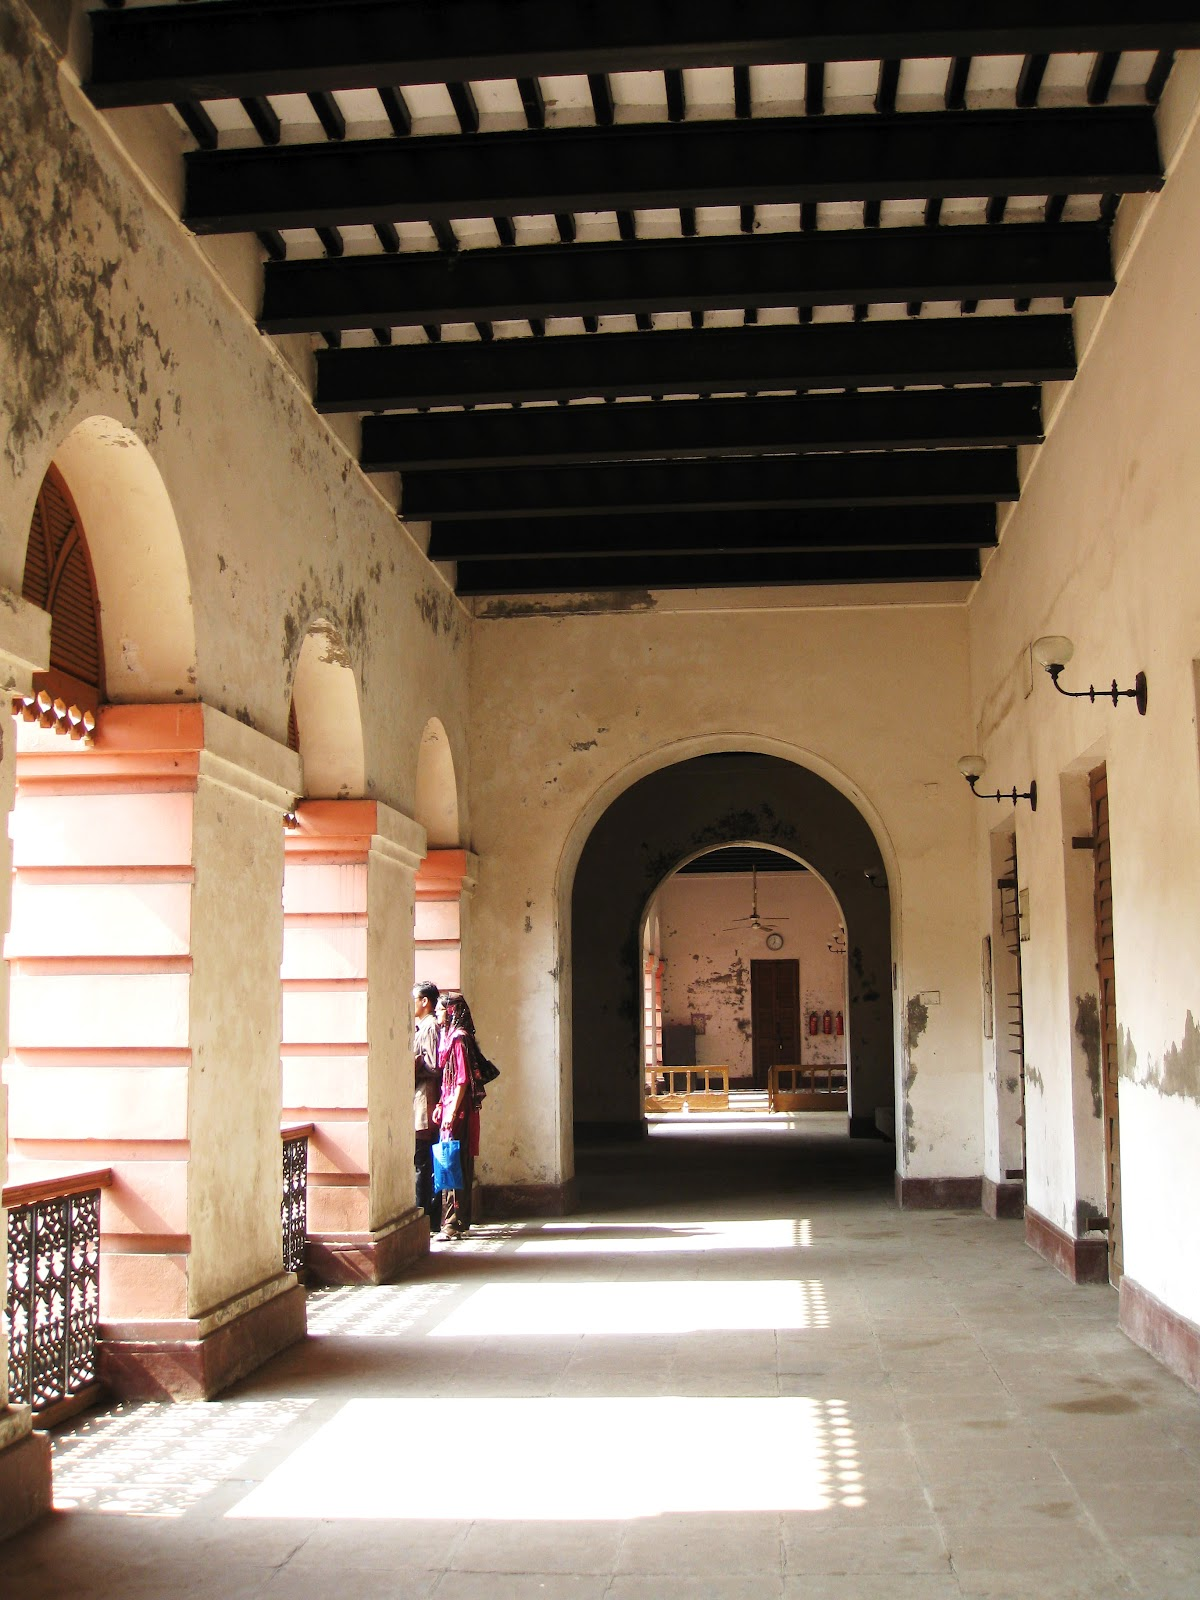 ahsan manzil historical facts and pictures the history hub